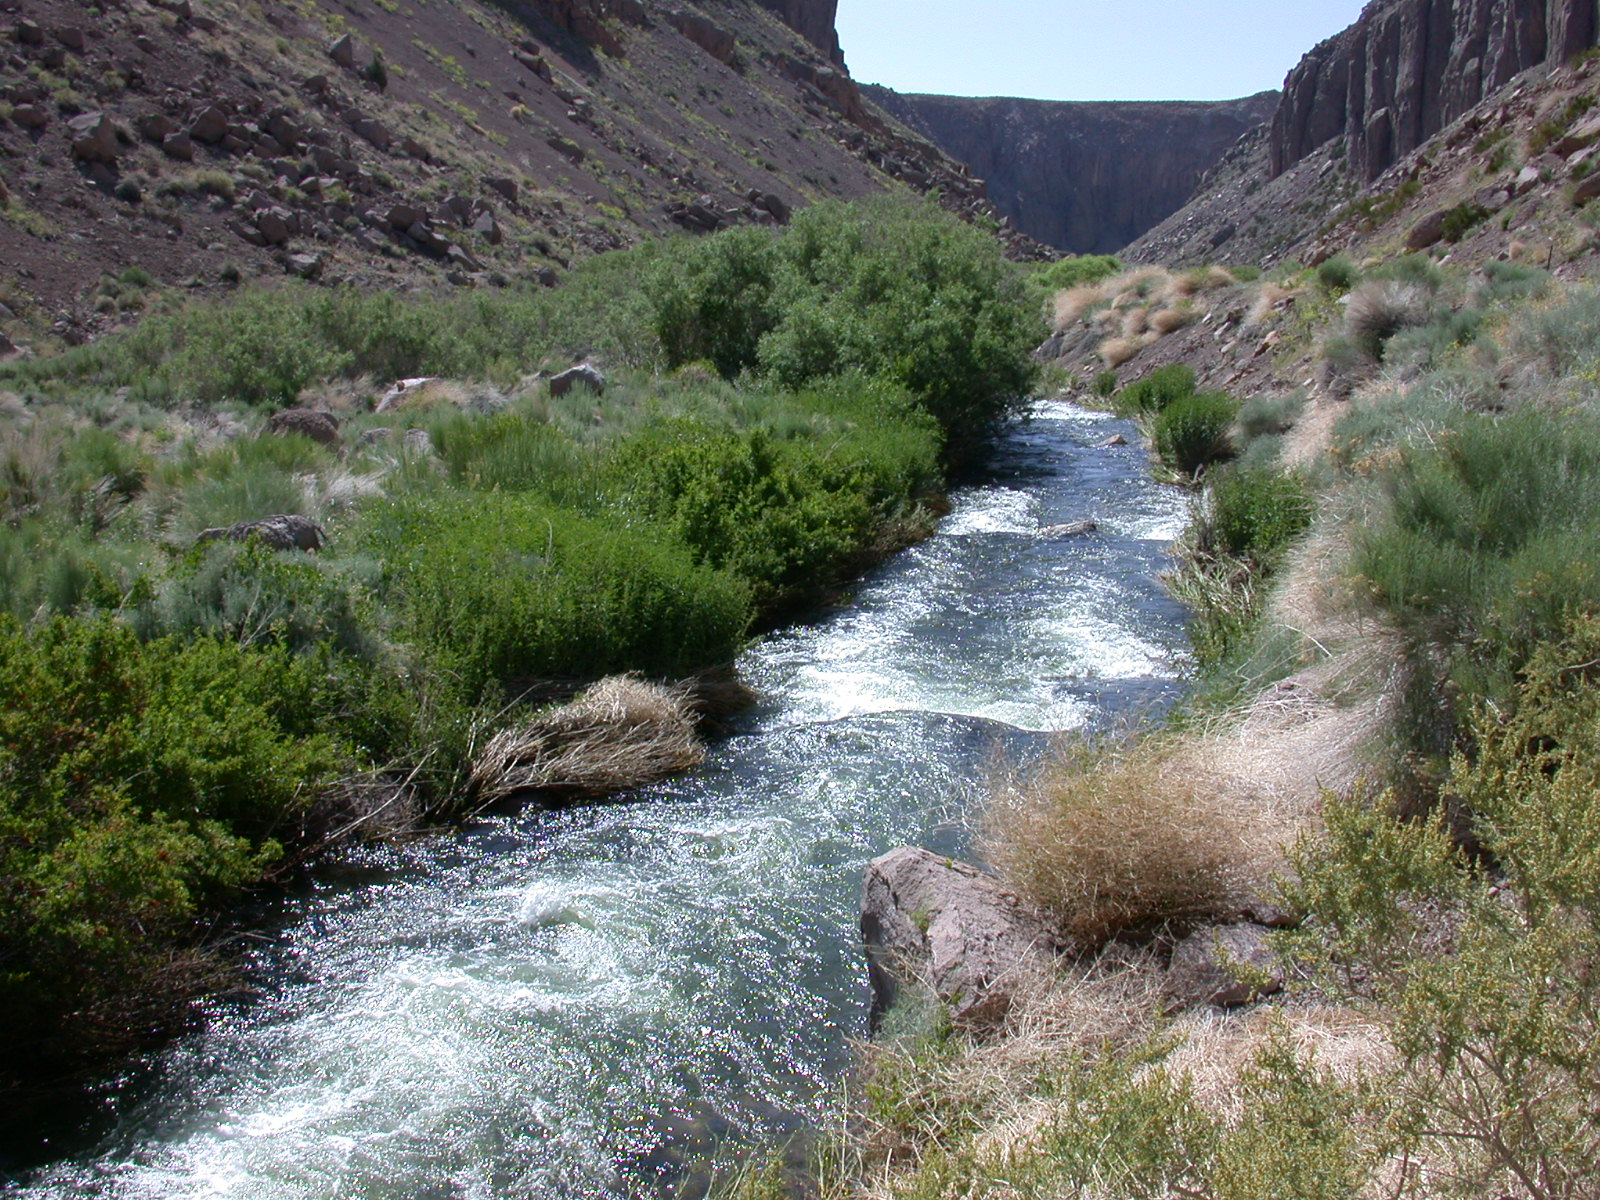 After decades of court proceedings, the owens river gorge has begun to